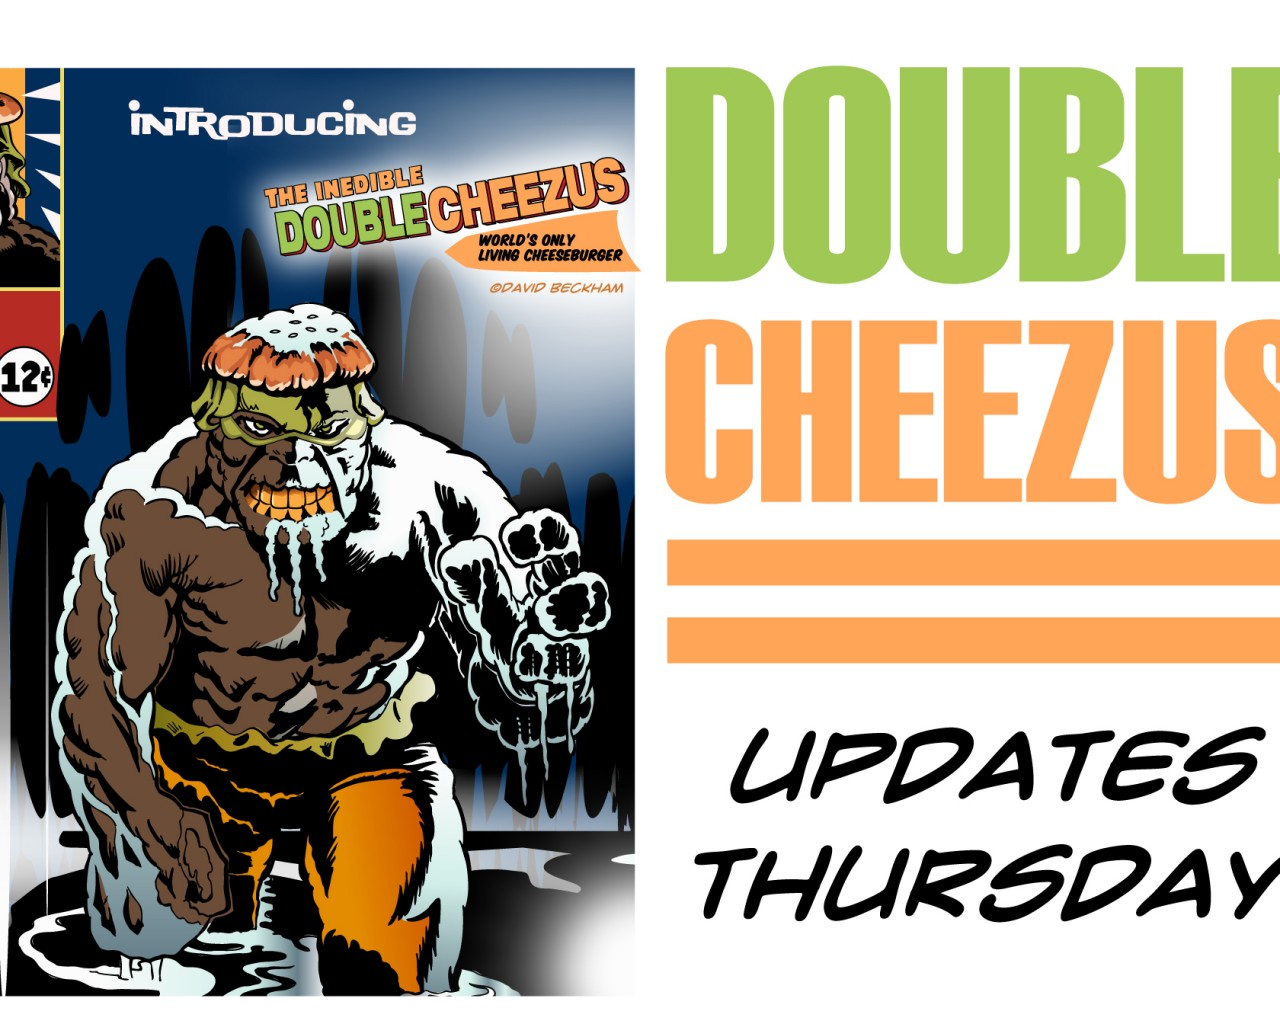 Poster Image for The Inedible Double-Cheezus